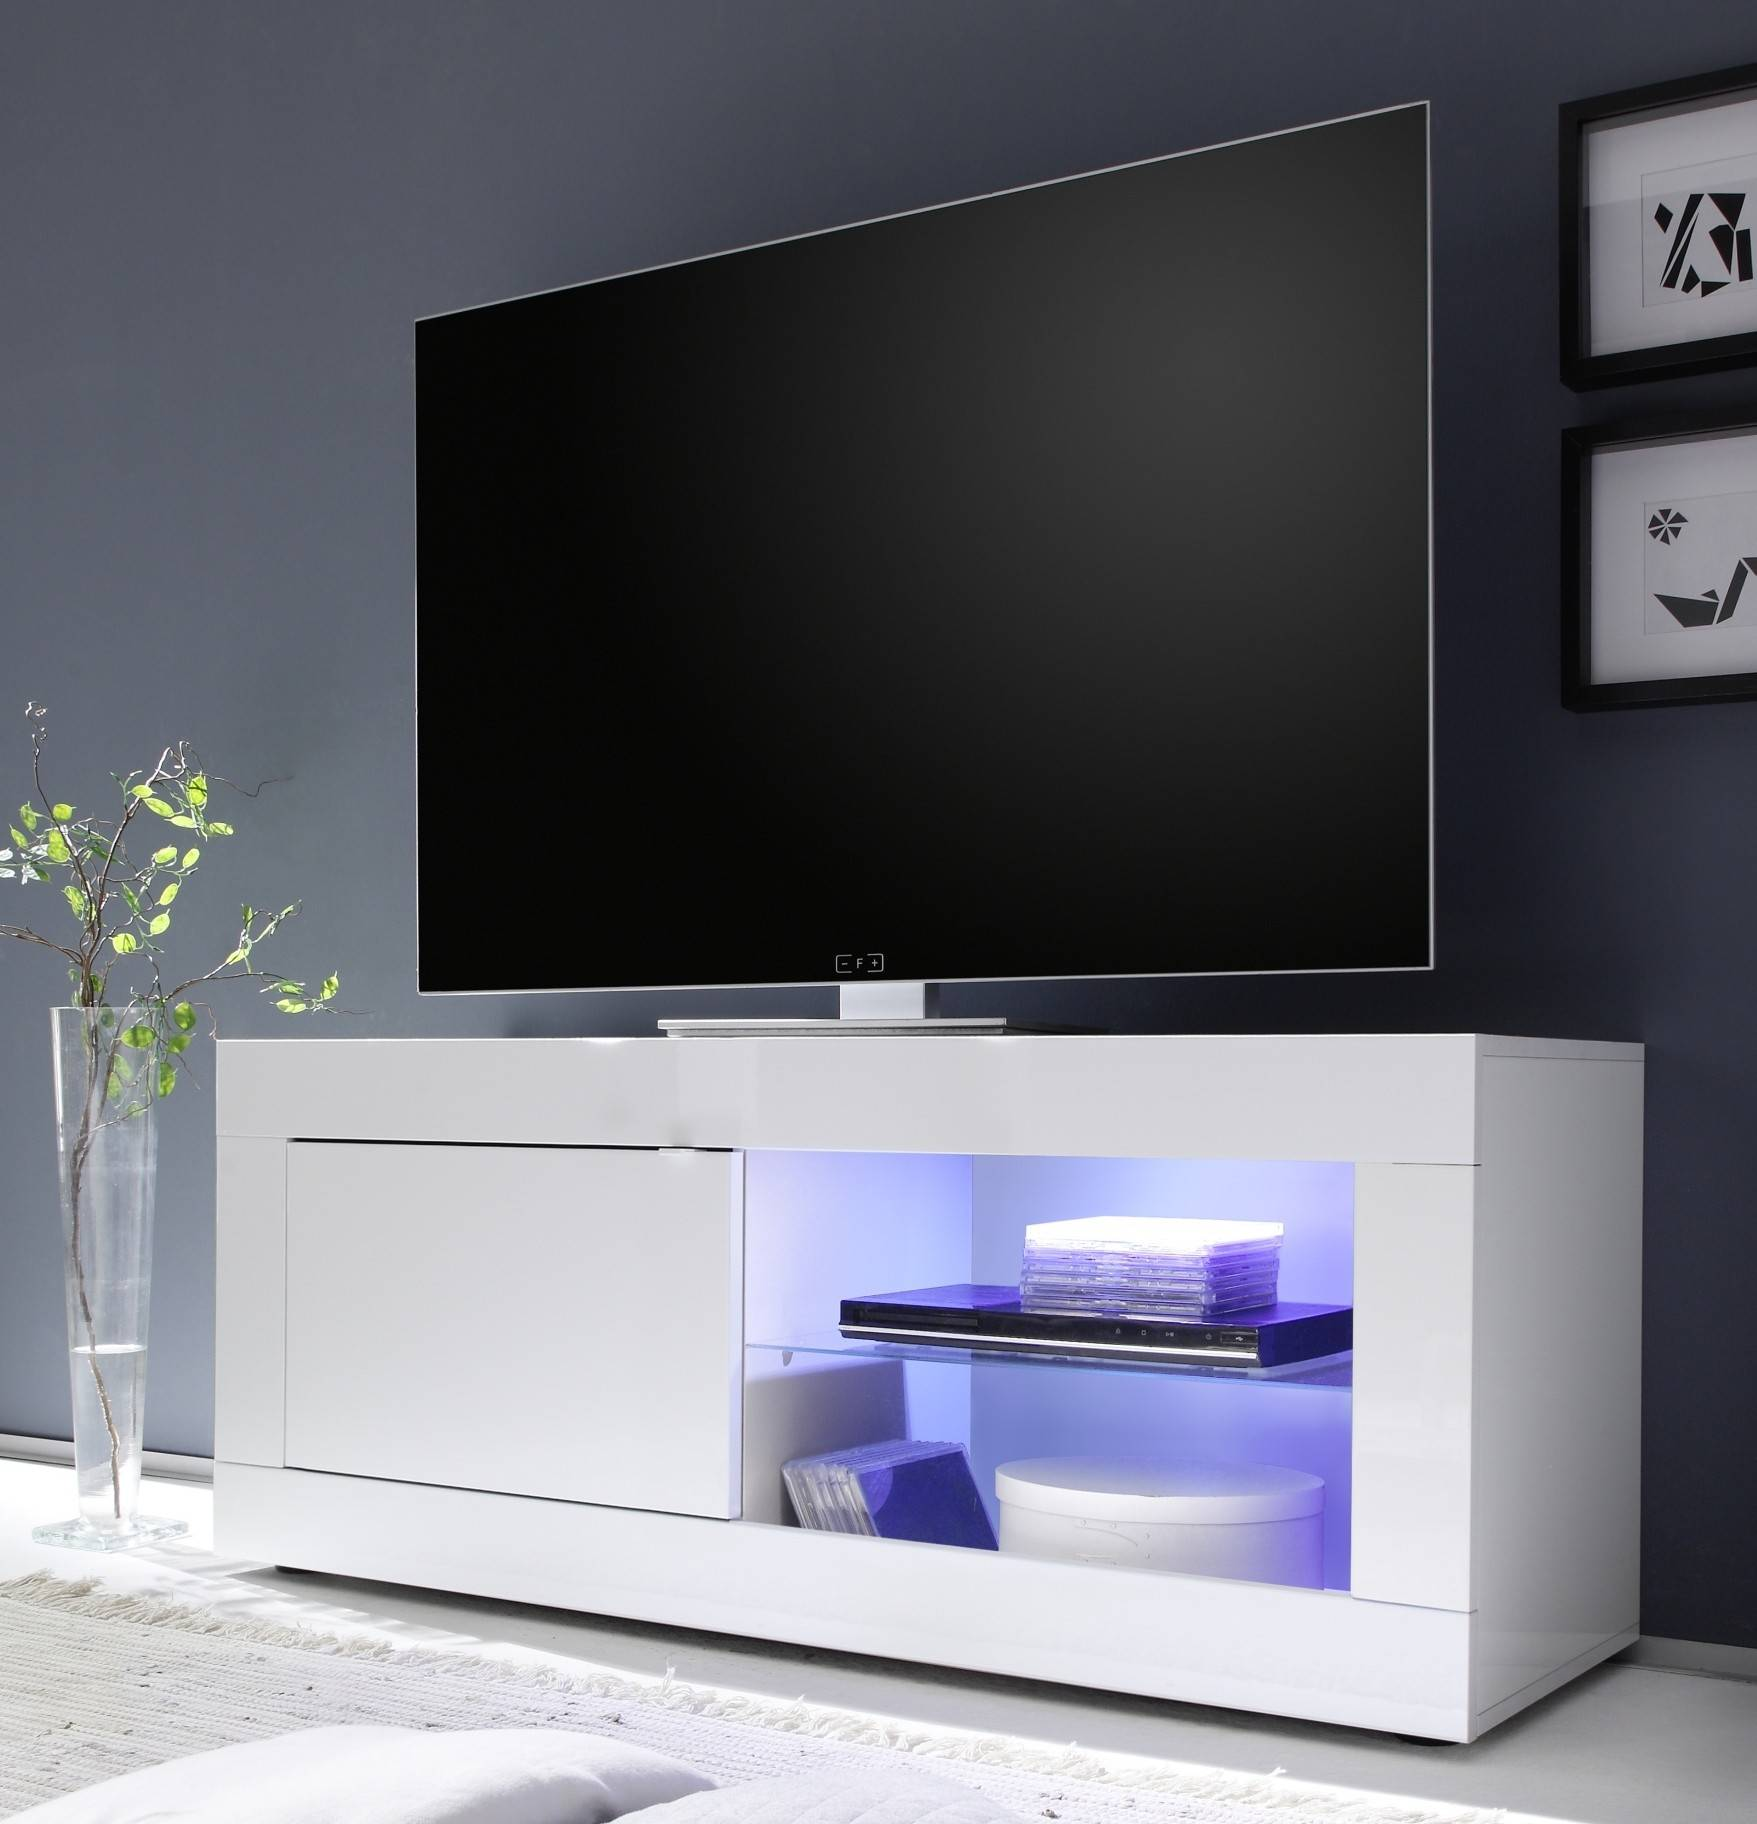 gdegdesign Meuble TV 1 porte blanc uni avec LED - Lernig Small